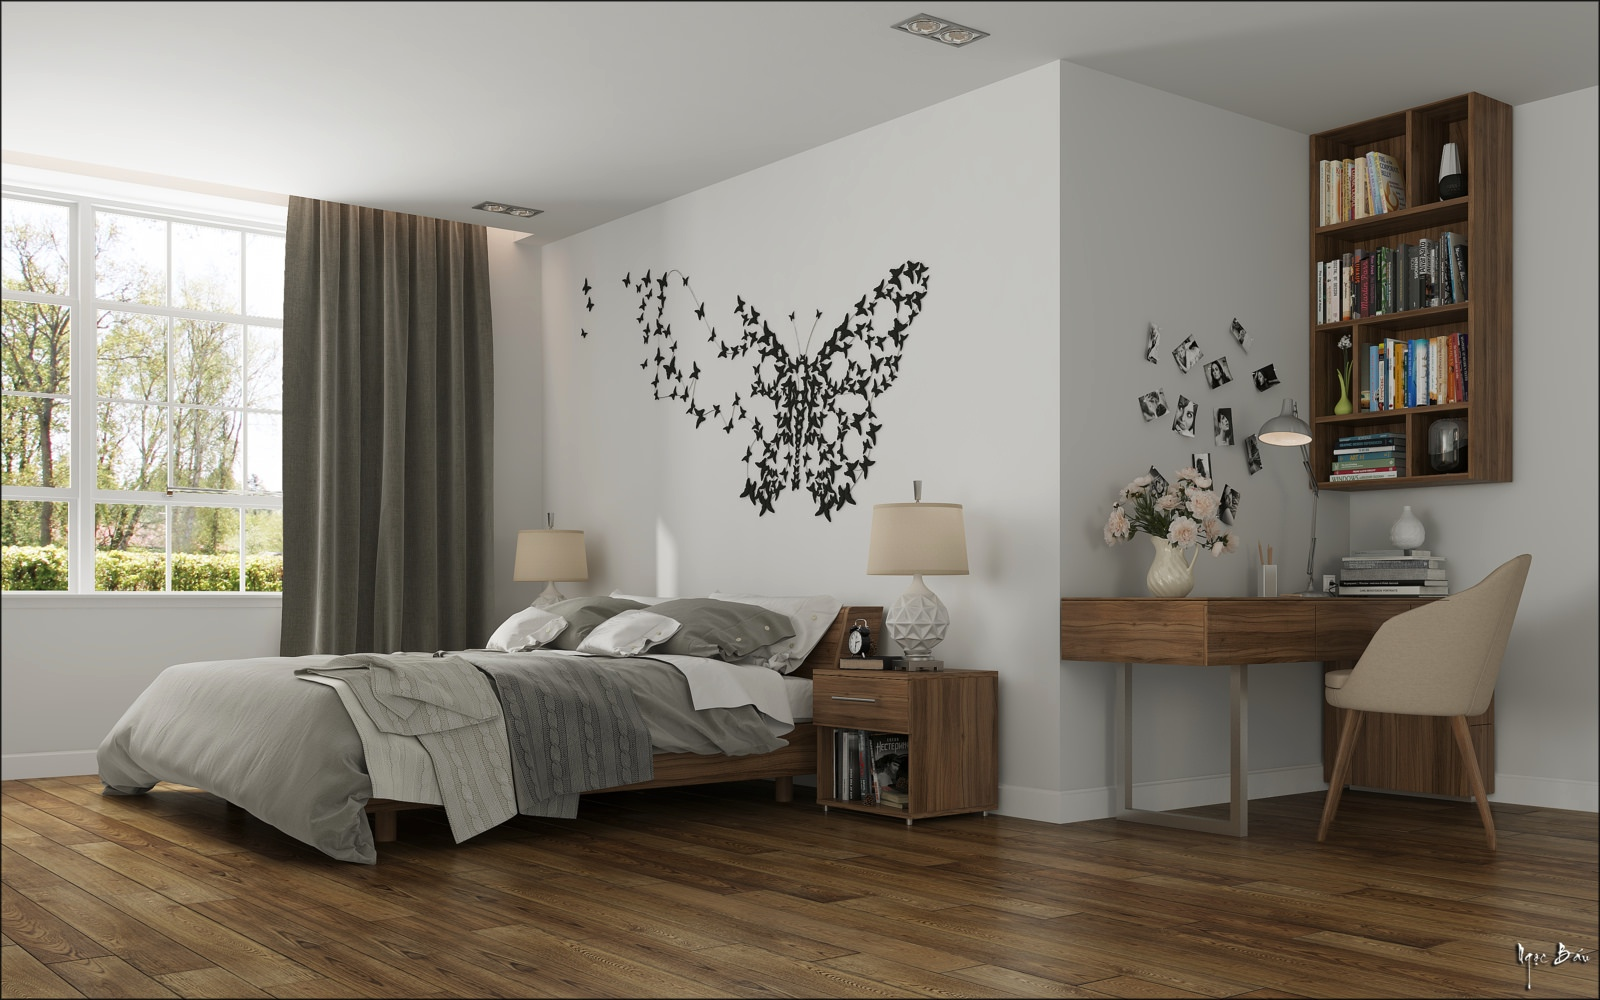 Bedroom butterfly wall art interior design ideas for Decoration chambre 2 lits